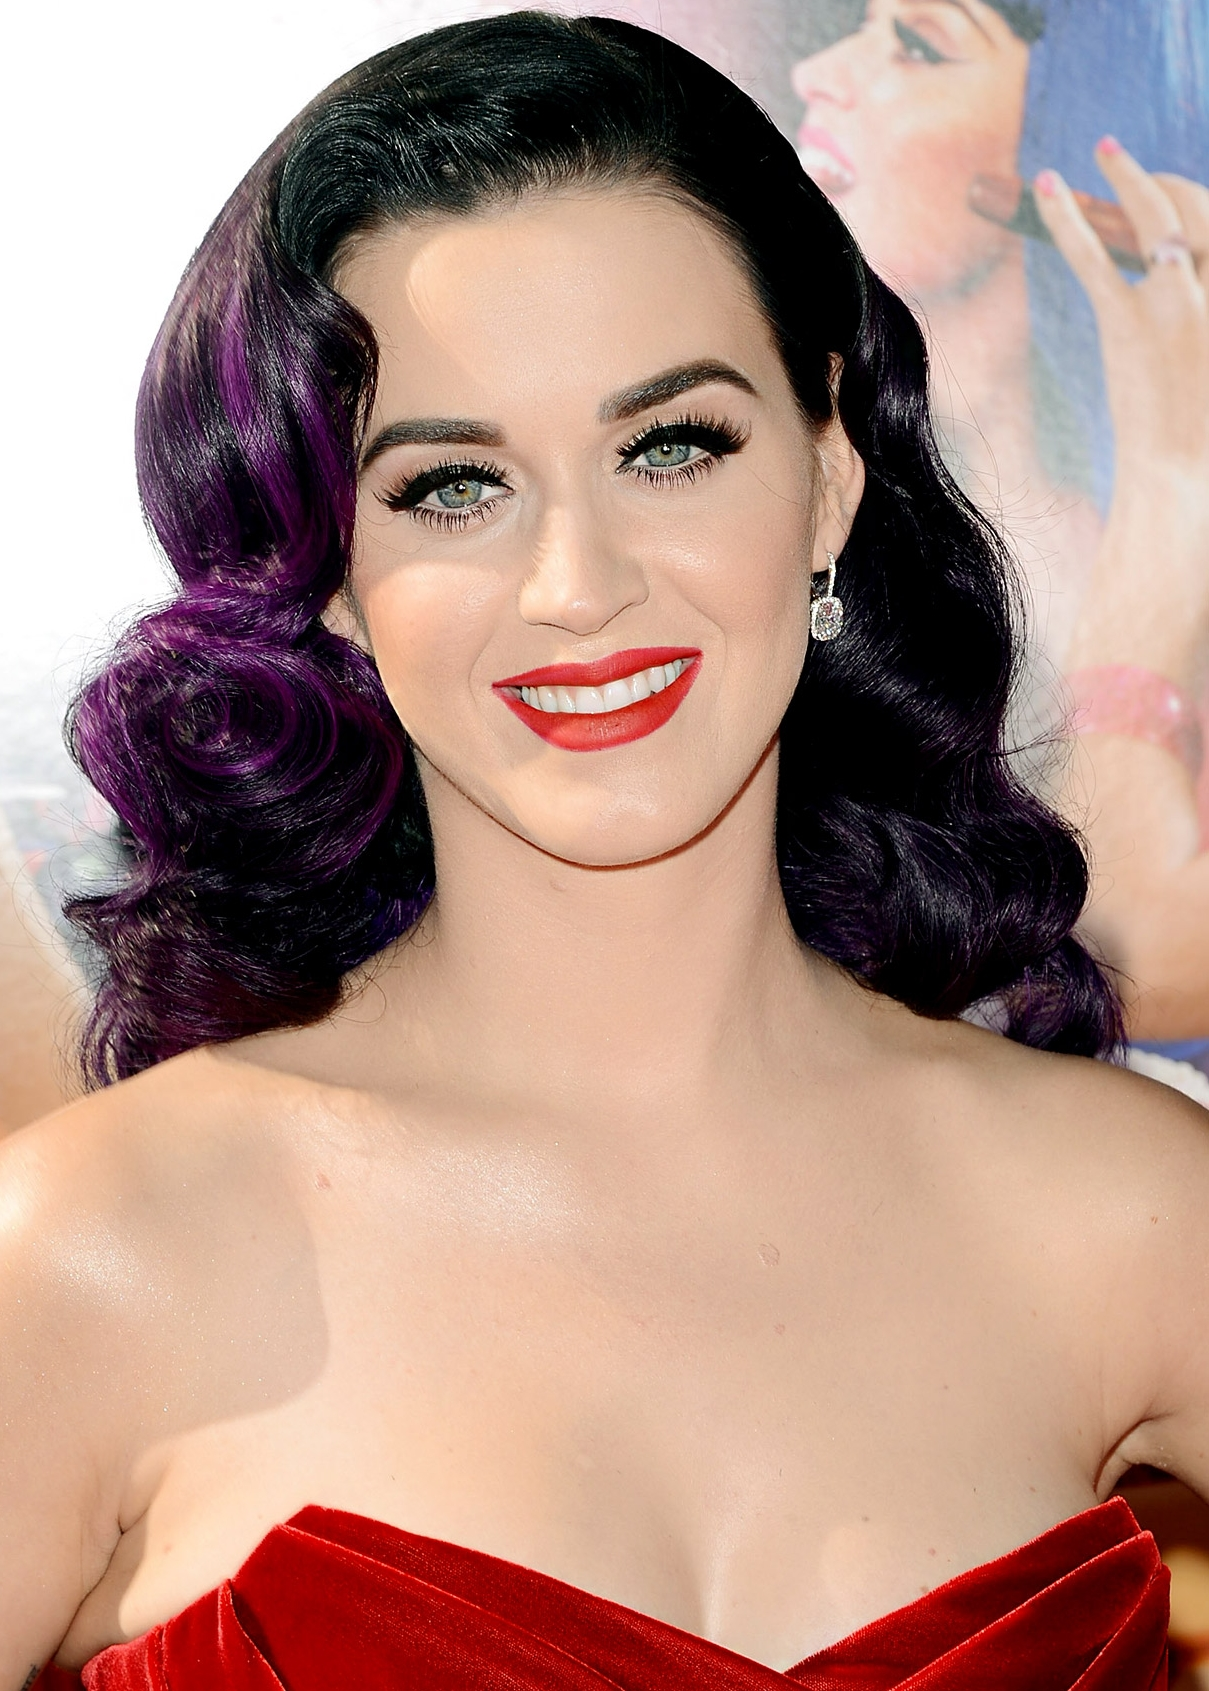 Katy Perry Favorite Things Color Food Movie Sports Hobbies ... Katy Perry